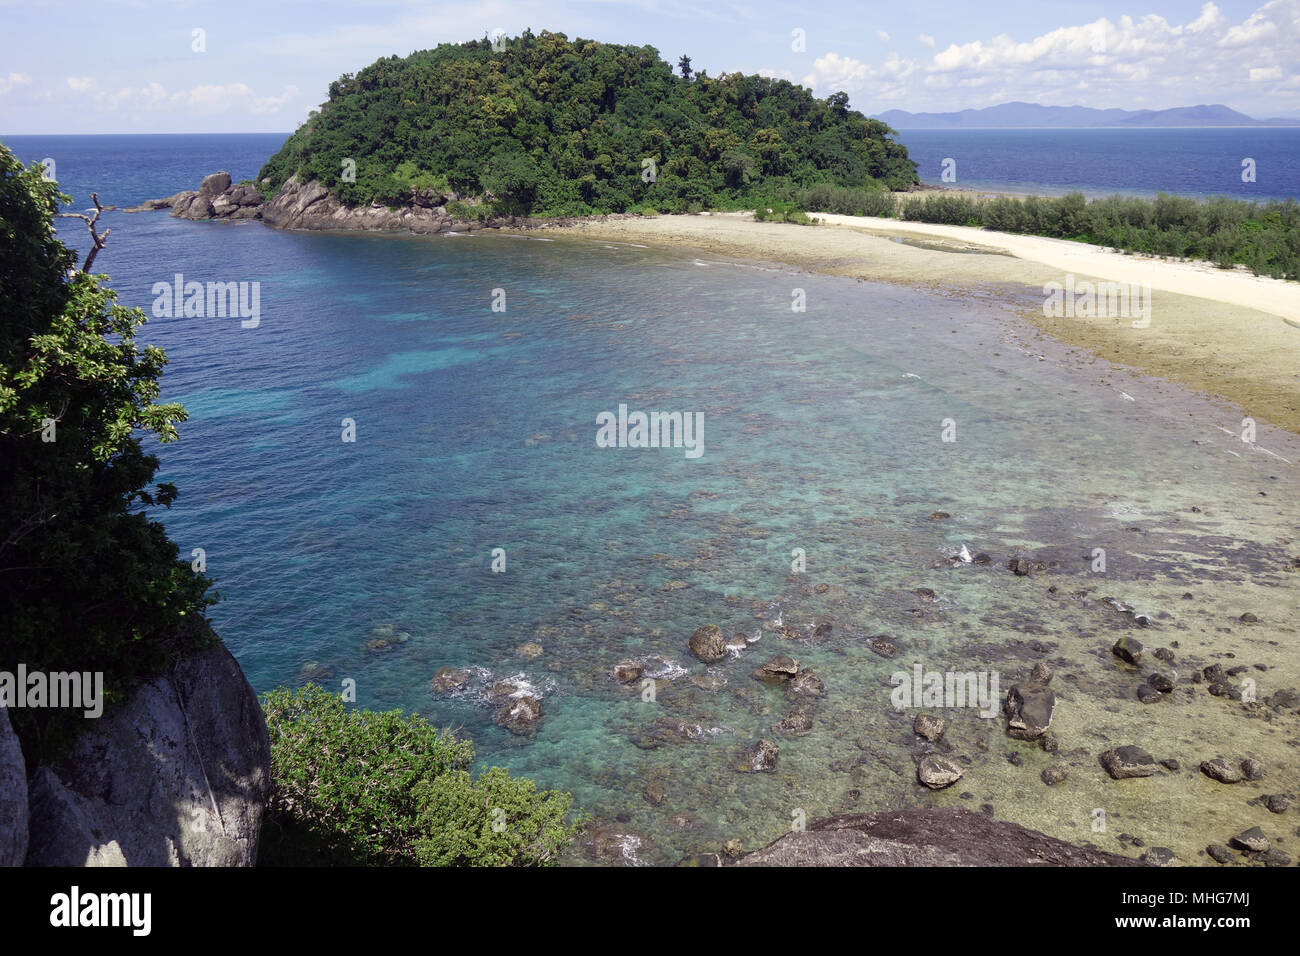 Russell Island, Great Barrier Reef Marine Park, Queensland, Australia Stock Photo